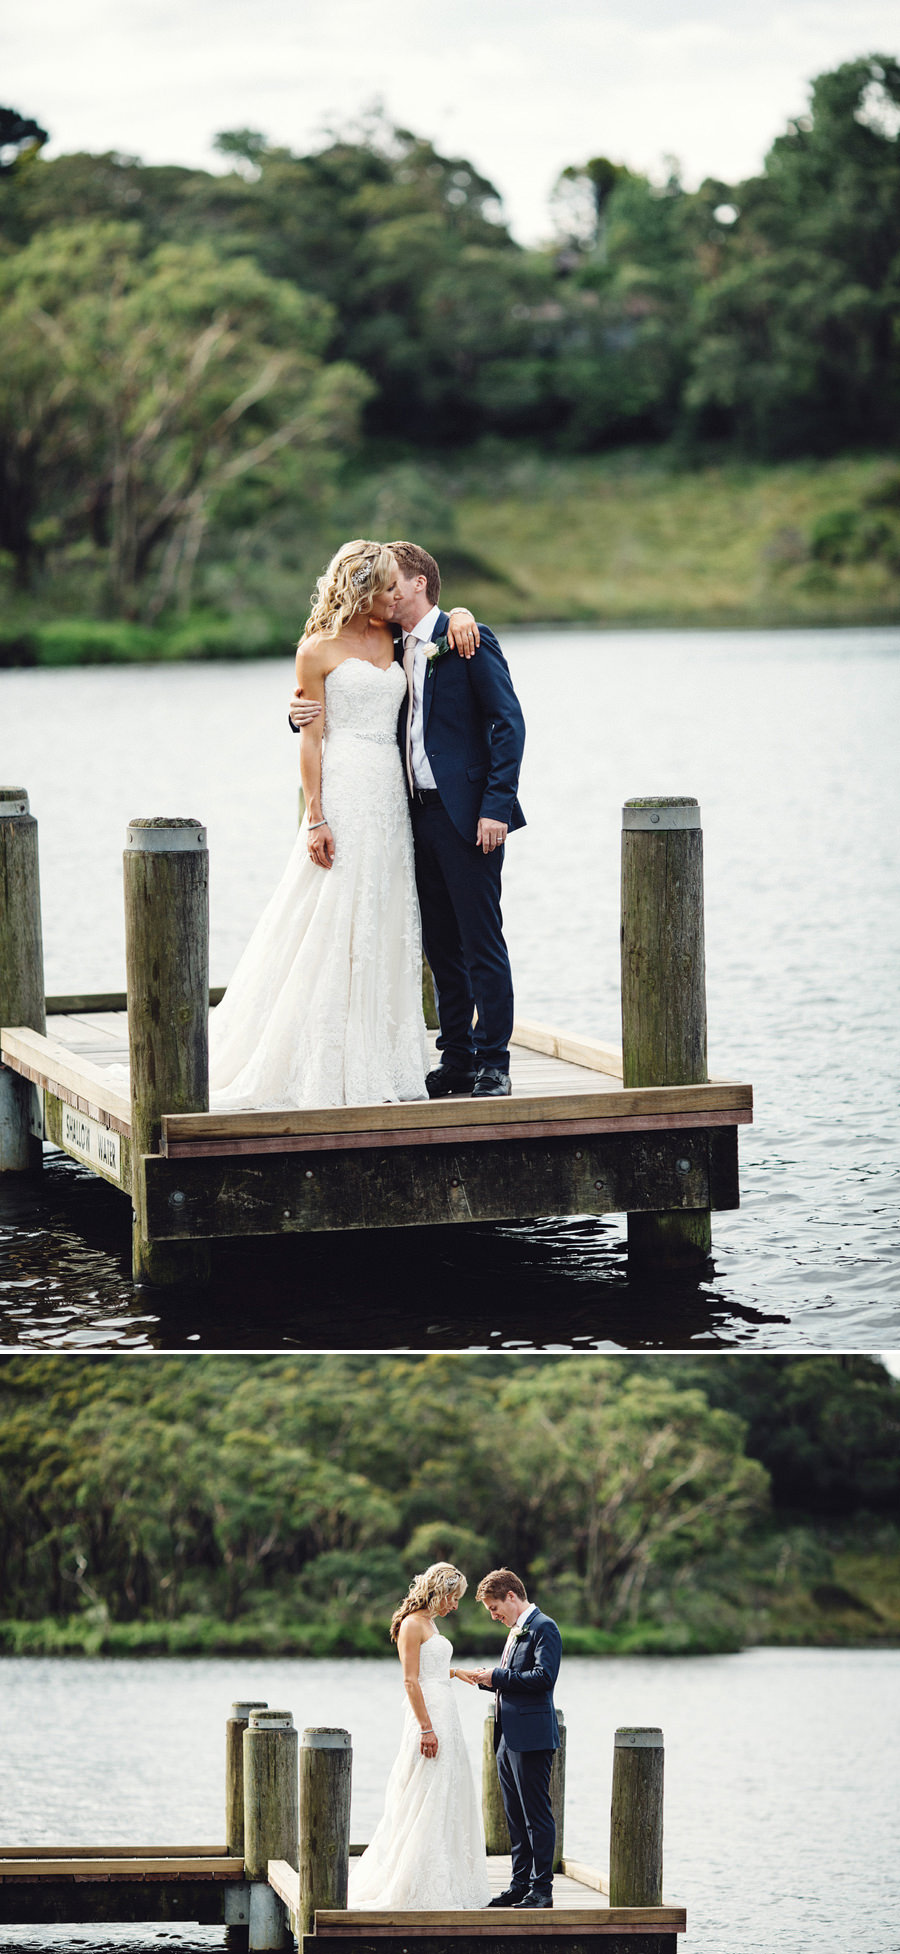 Wentworth Falls Lake Wedding Photographers: Bride & Groom Portraits